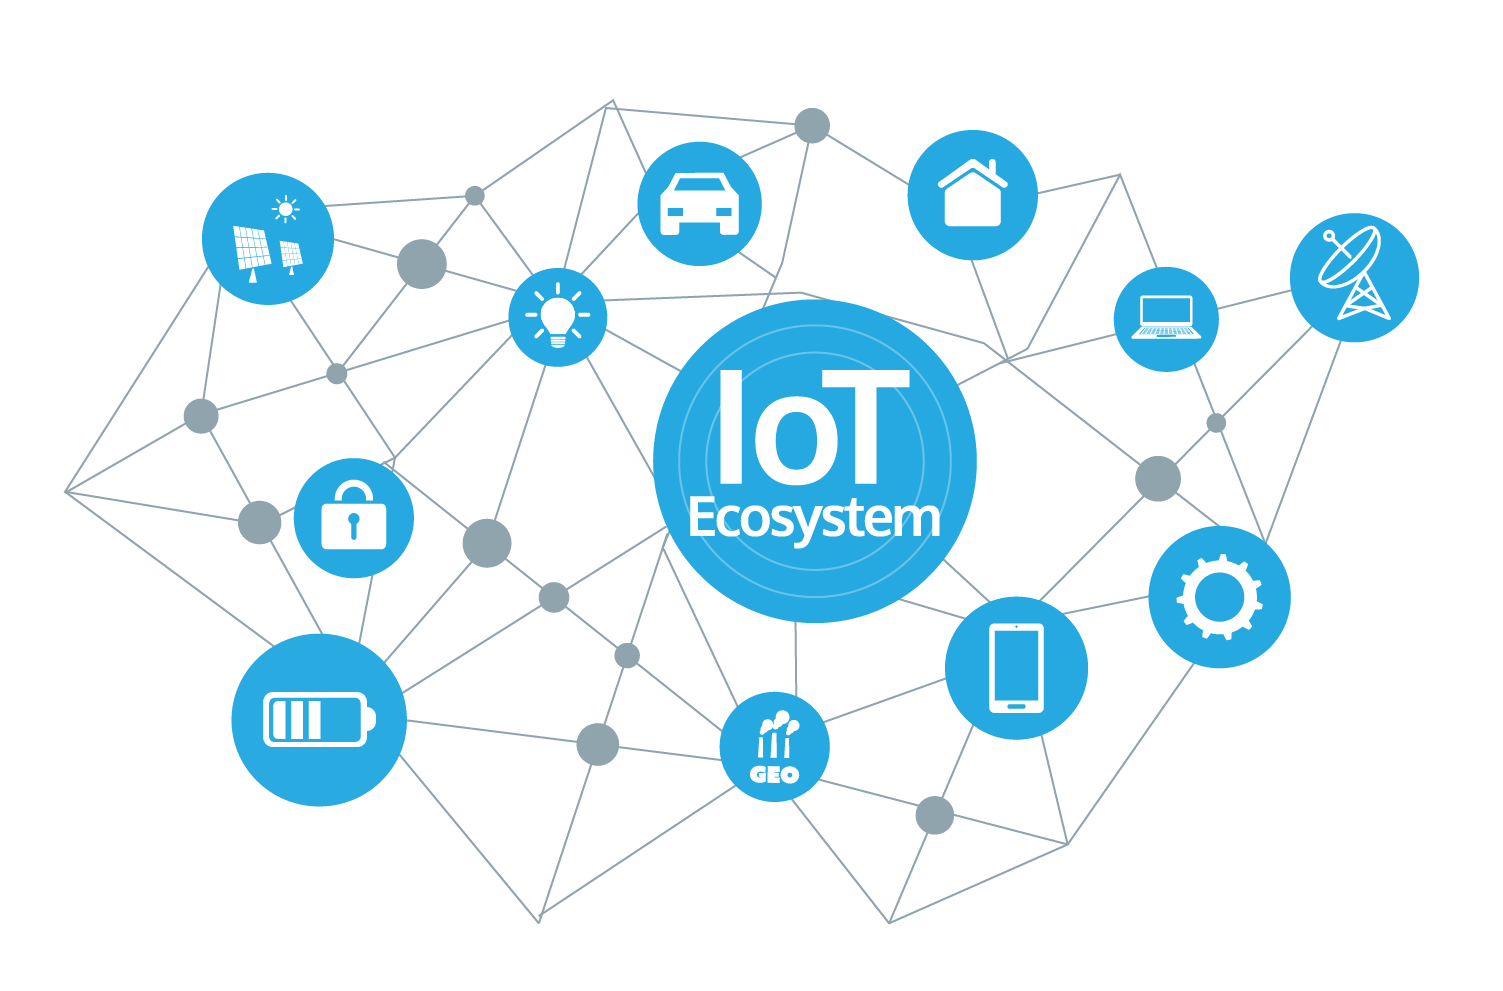 Growth vector technology concept. Iot ecosystem sensors expo